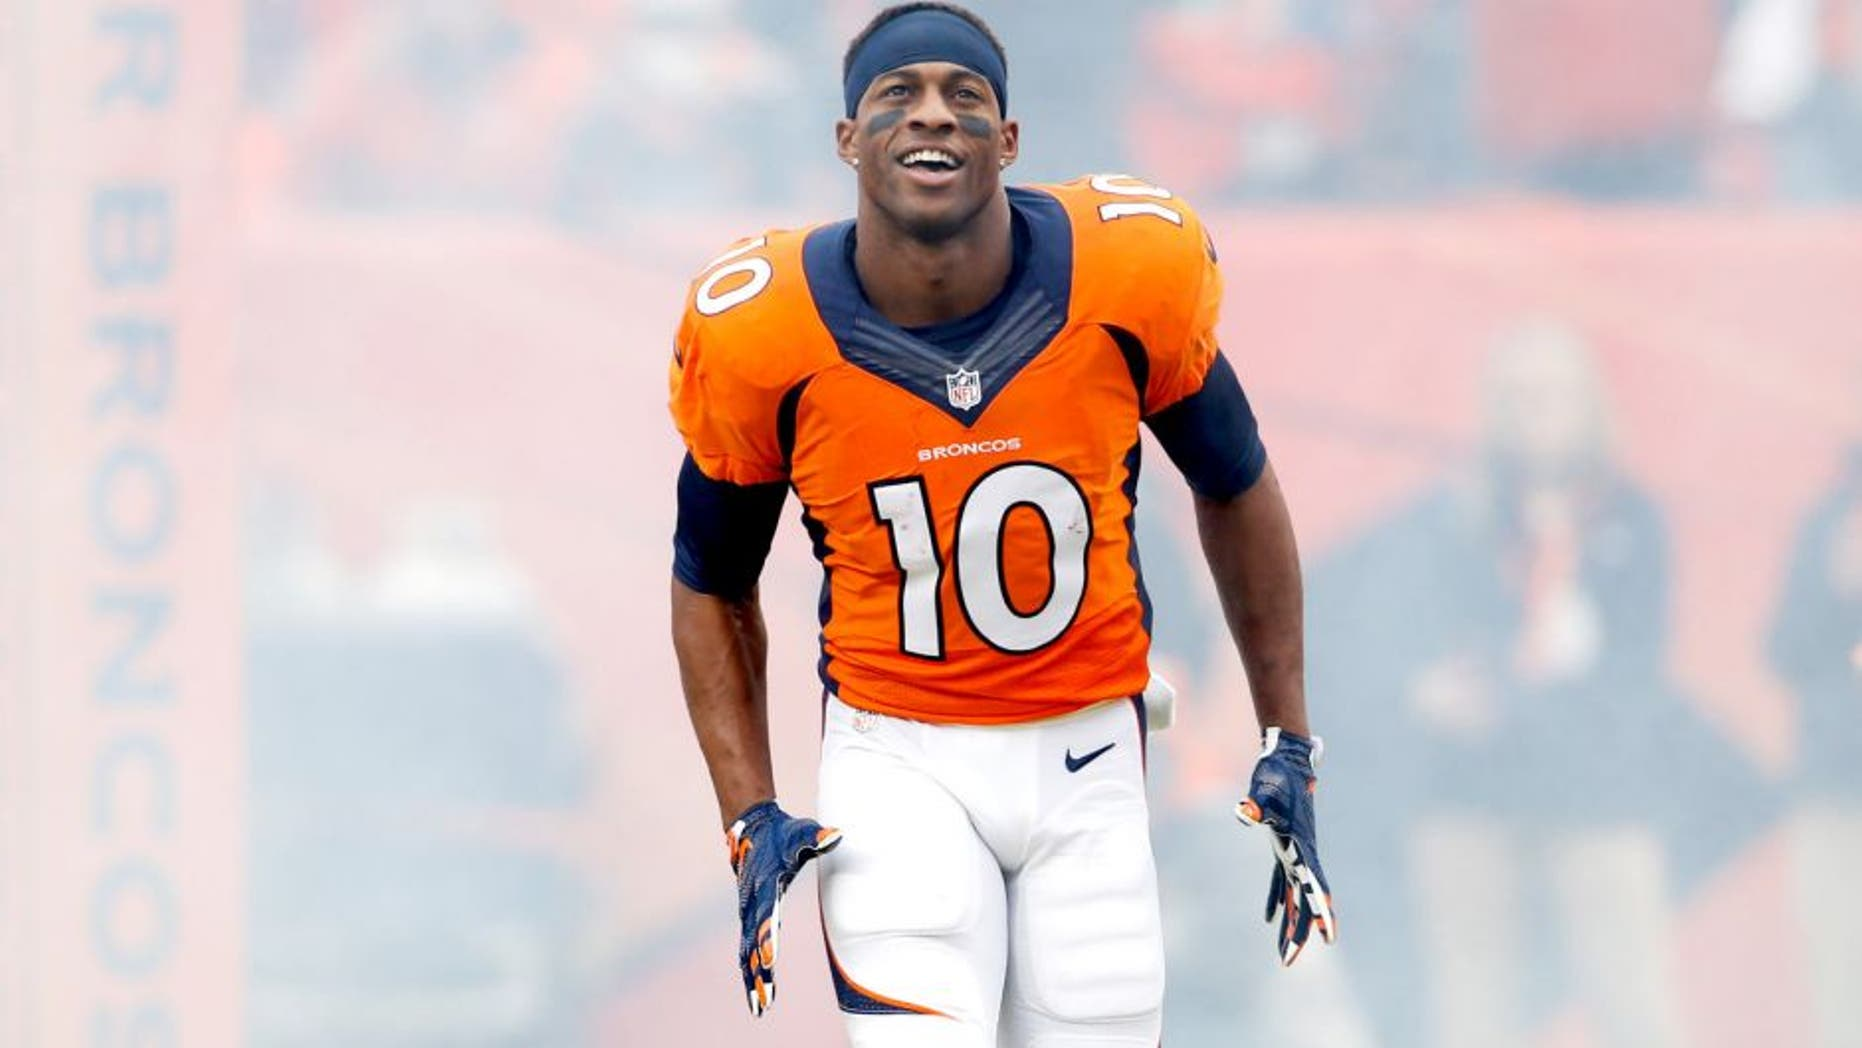 Jan 11, 2015; Denver, CO, USA; Denver Broncos wide receiver Emmanuel Sanders (10) in the 2014 AFC Divisional playoff football game against the Indianapolis Colts at Sports Authority Field at Mile High. Mandatory Credit: Chris Humphreys-USA TODAY Sports